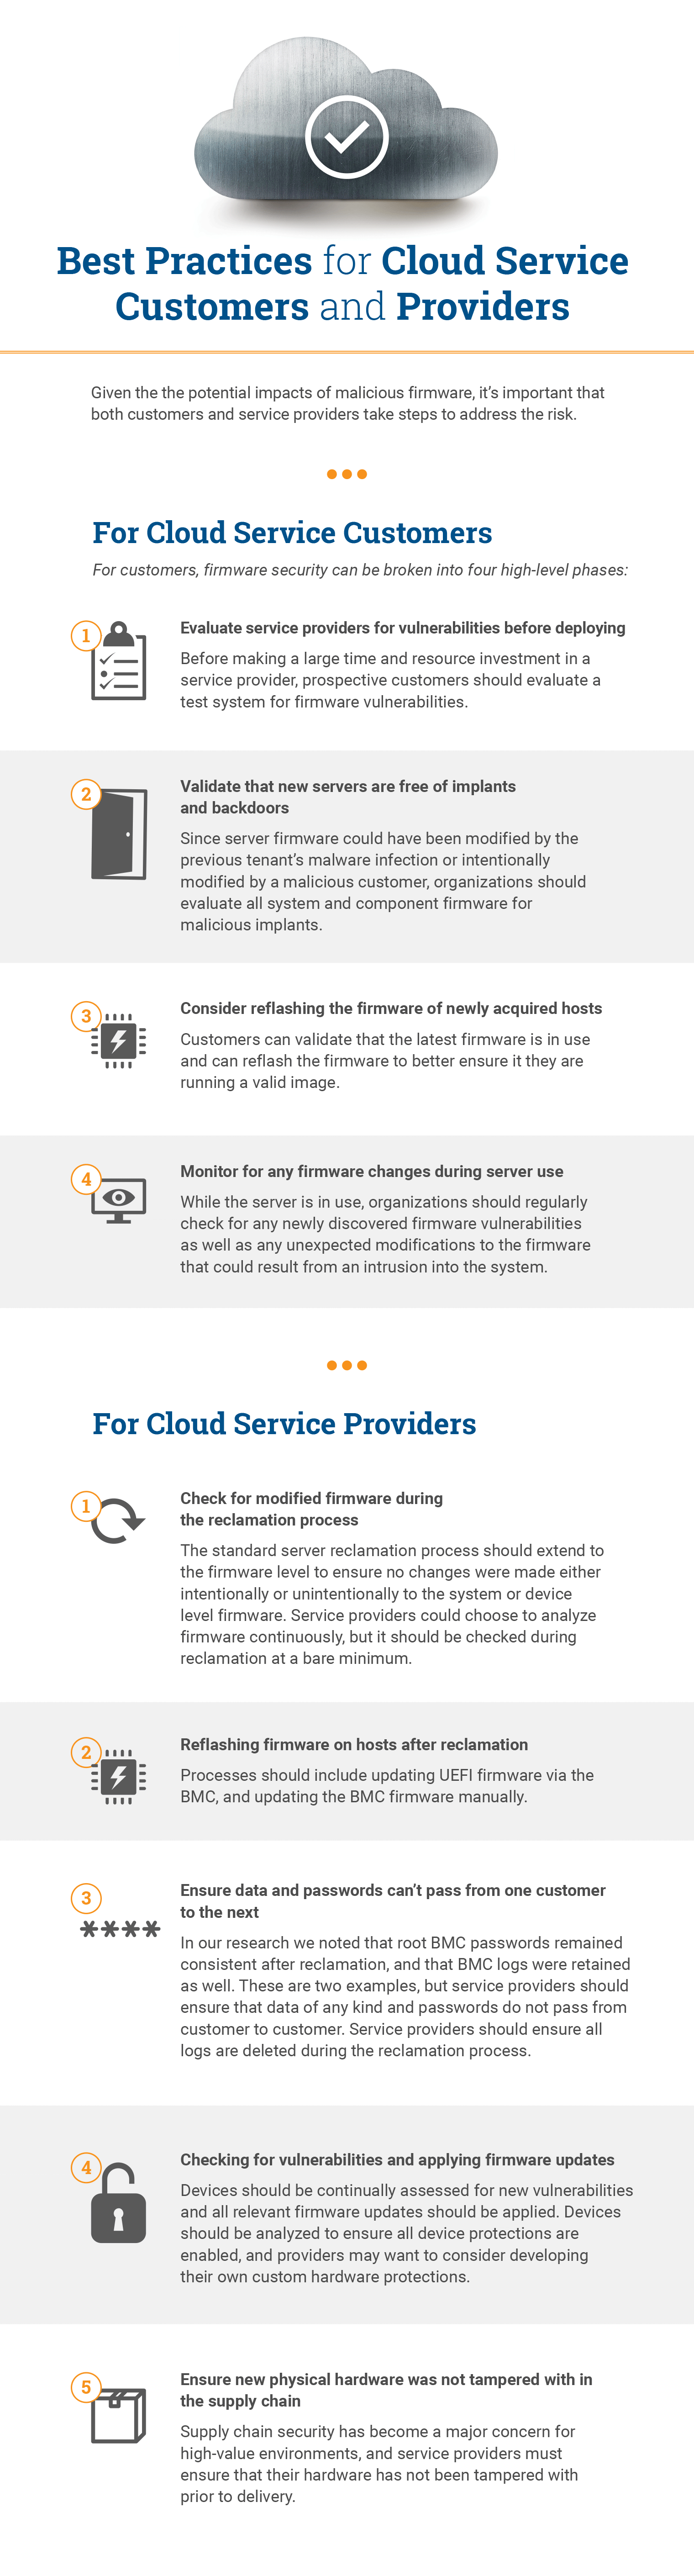 Best Practices for Cloud Service Customers and Providers Infographic